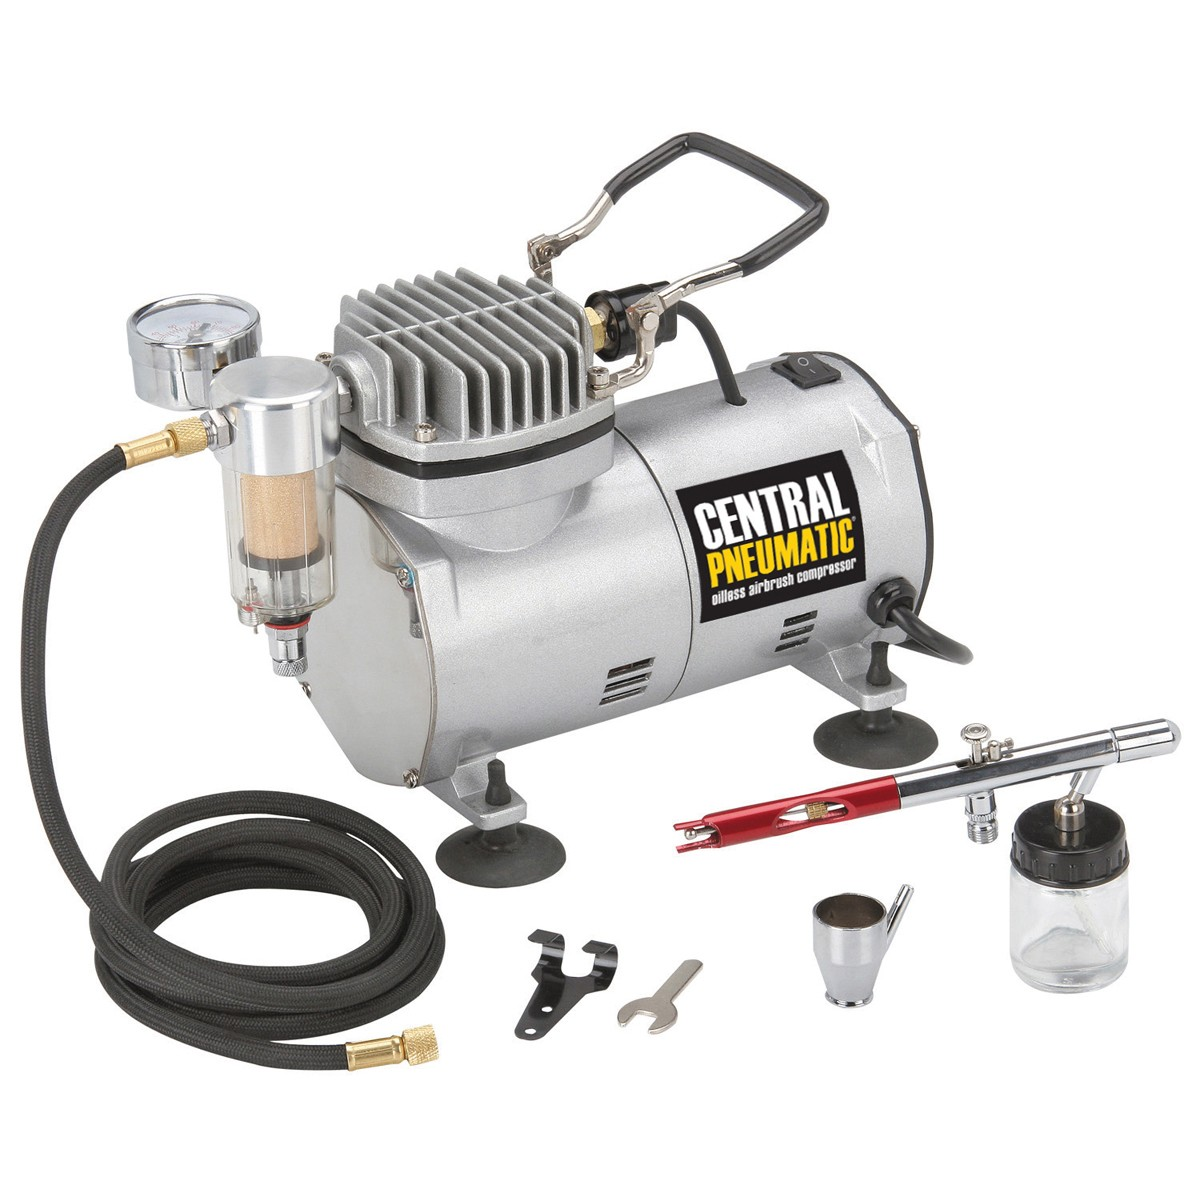 1/5 HP 58 PSI Oilless Airbrush Compressor Kit